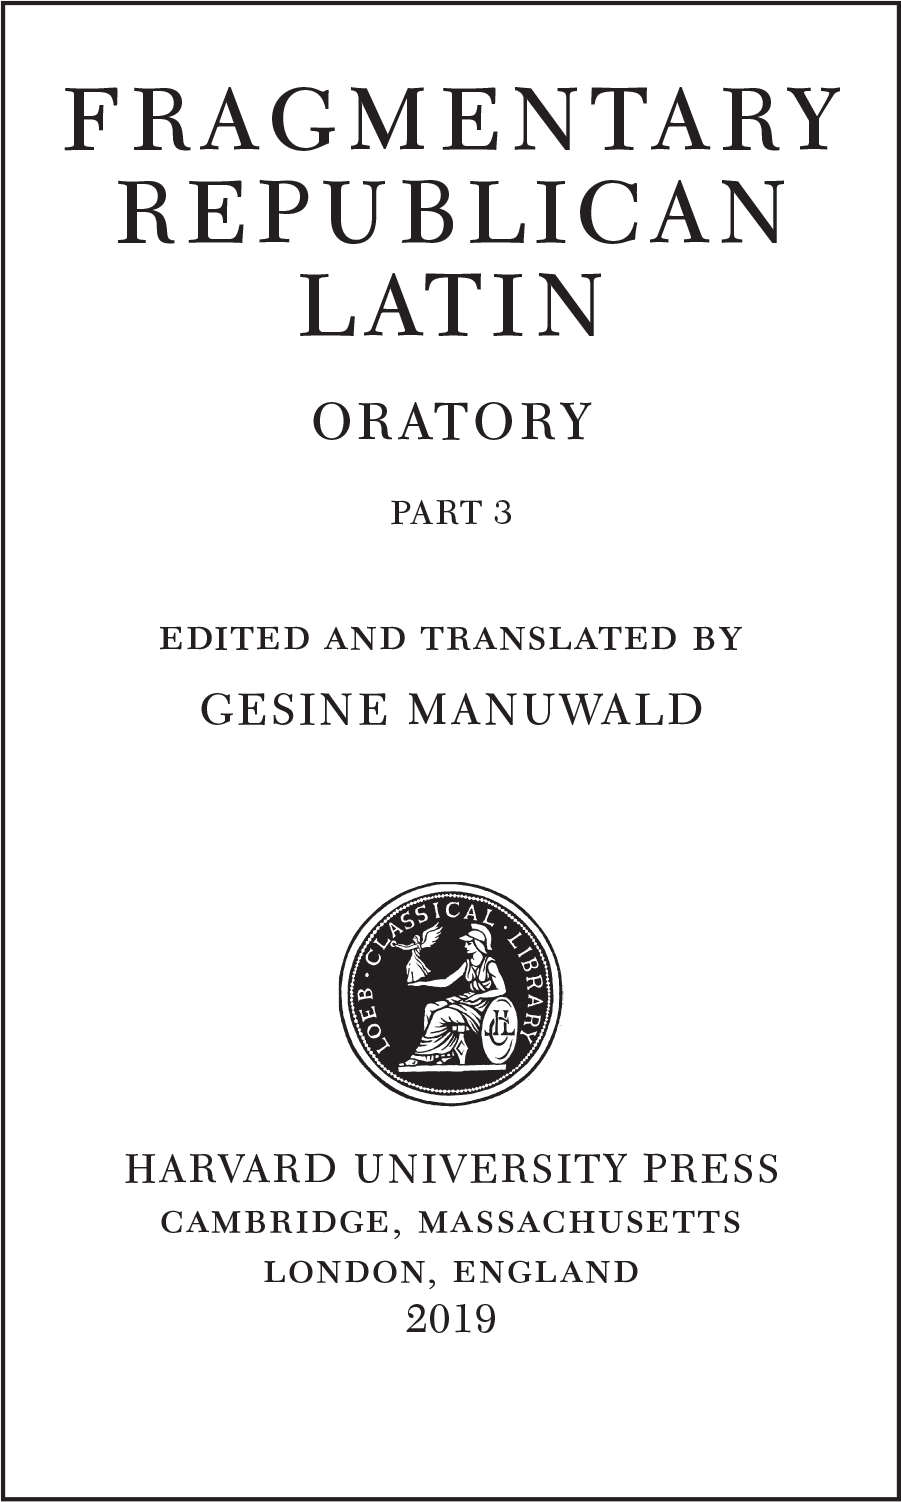 FRAGMENTARY REPUBLICAN LATIN ORATORY PART 3 edited and translated by GESINE MANUWALD  HARVARD UNIVERSITY PRESS cambridge, massachusetts london, england 2019